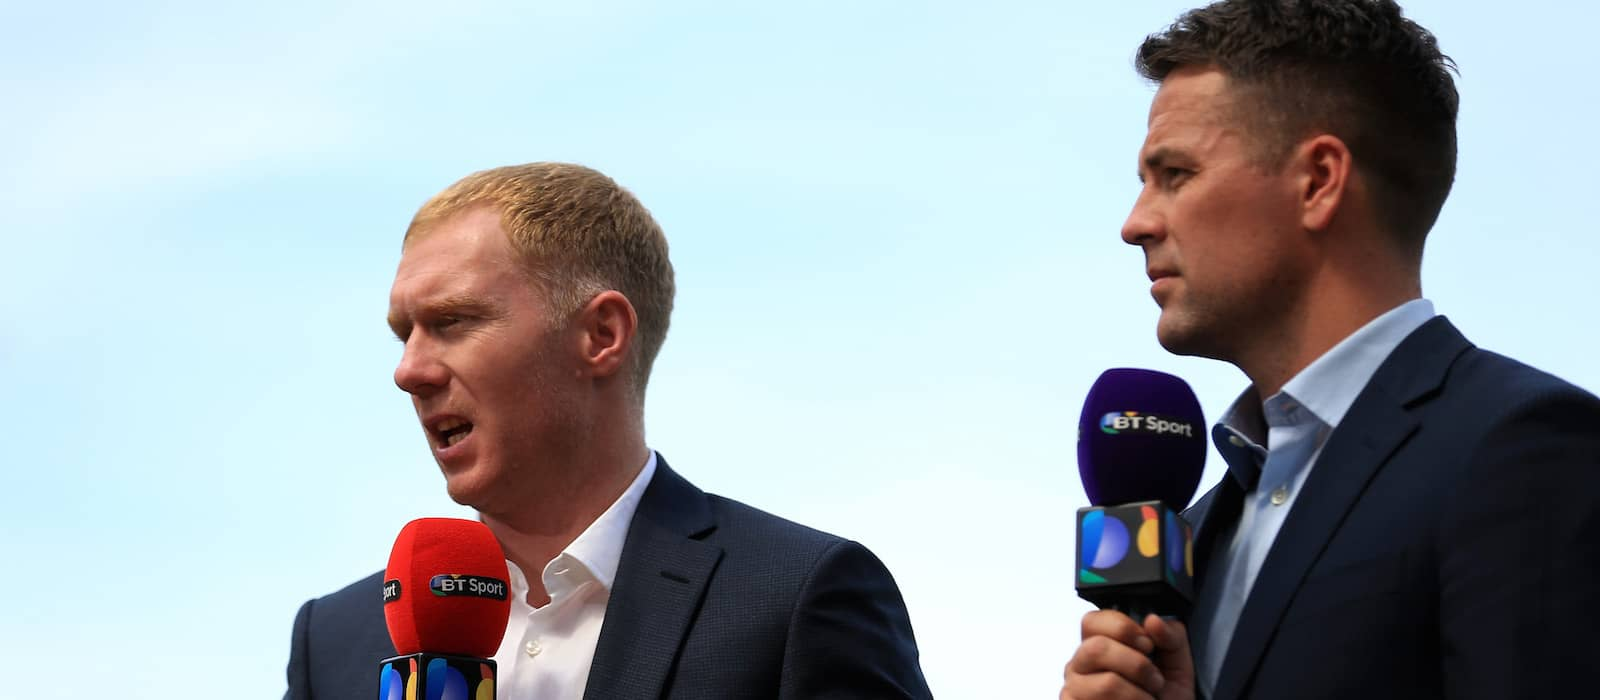 Paul Scholes: I don't think Manchester United have enough quality